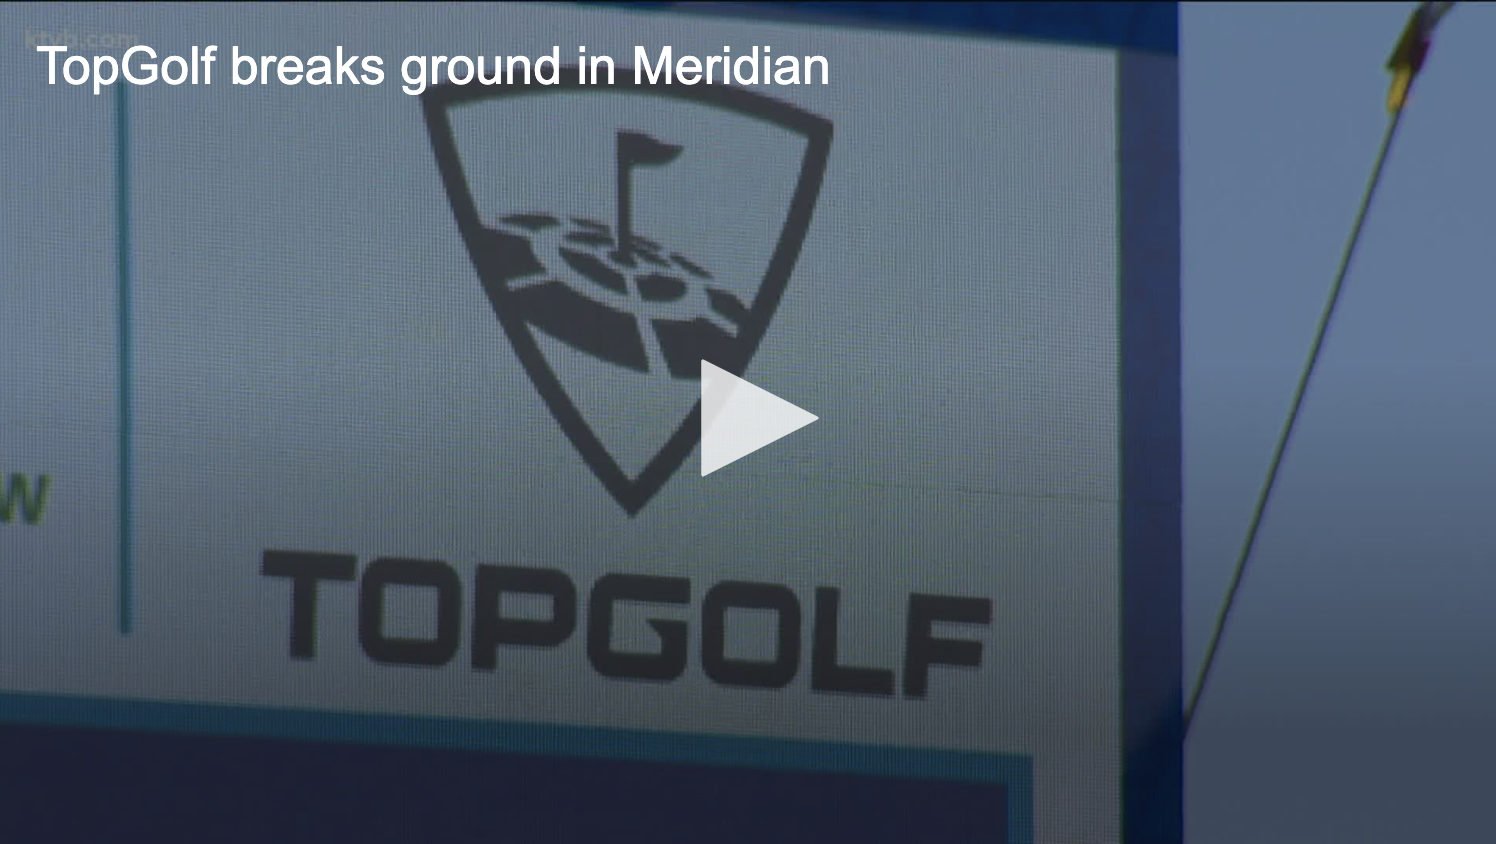 Topgolf breaks ground in Meridian - The entertainment facility is part of the new Eagle View Landing on the corner of Interstate 84 and Eagle Road.